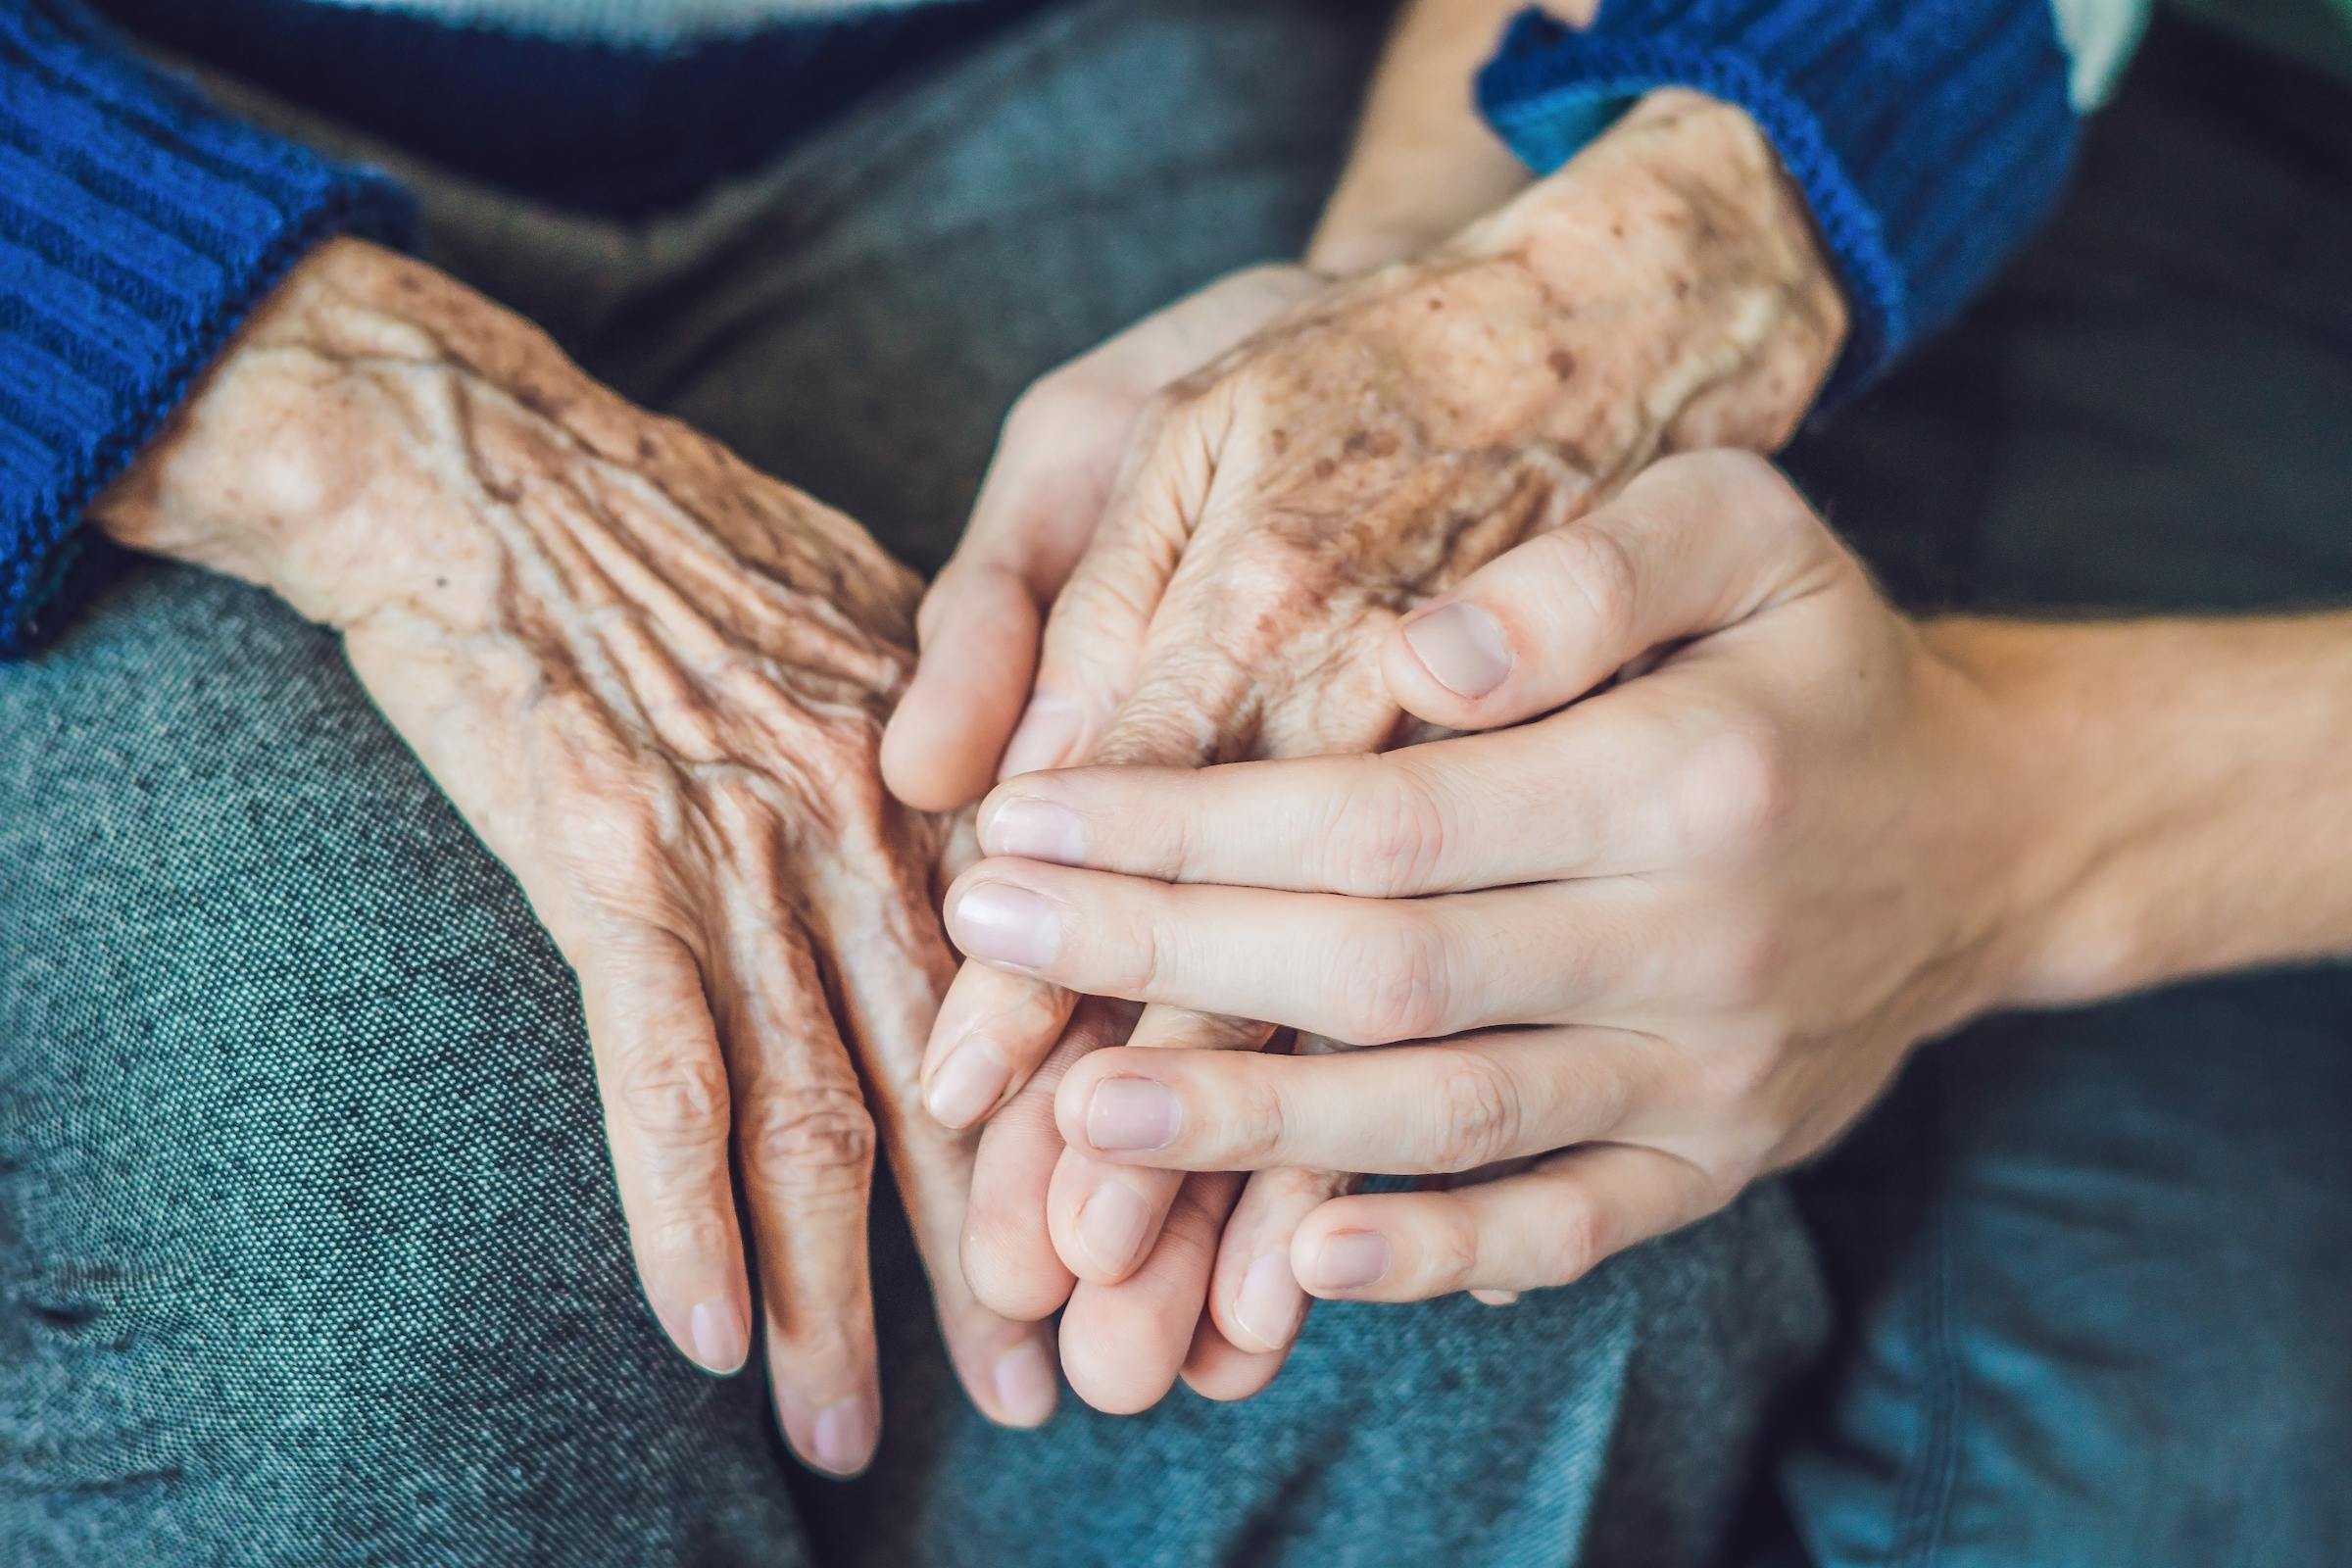 A young caregiver's hands hold the hands of an elderly client.